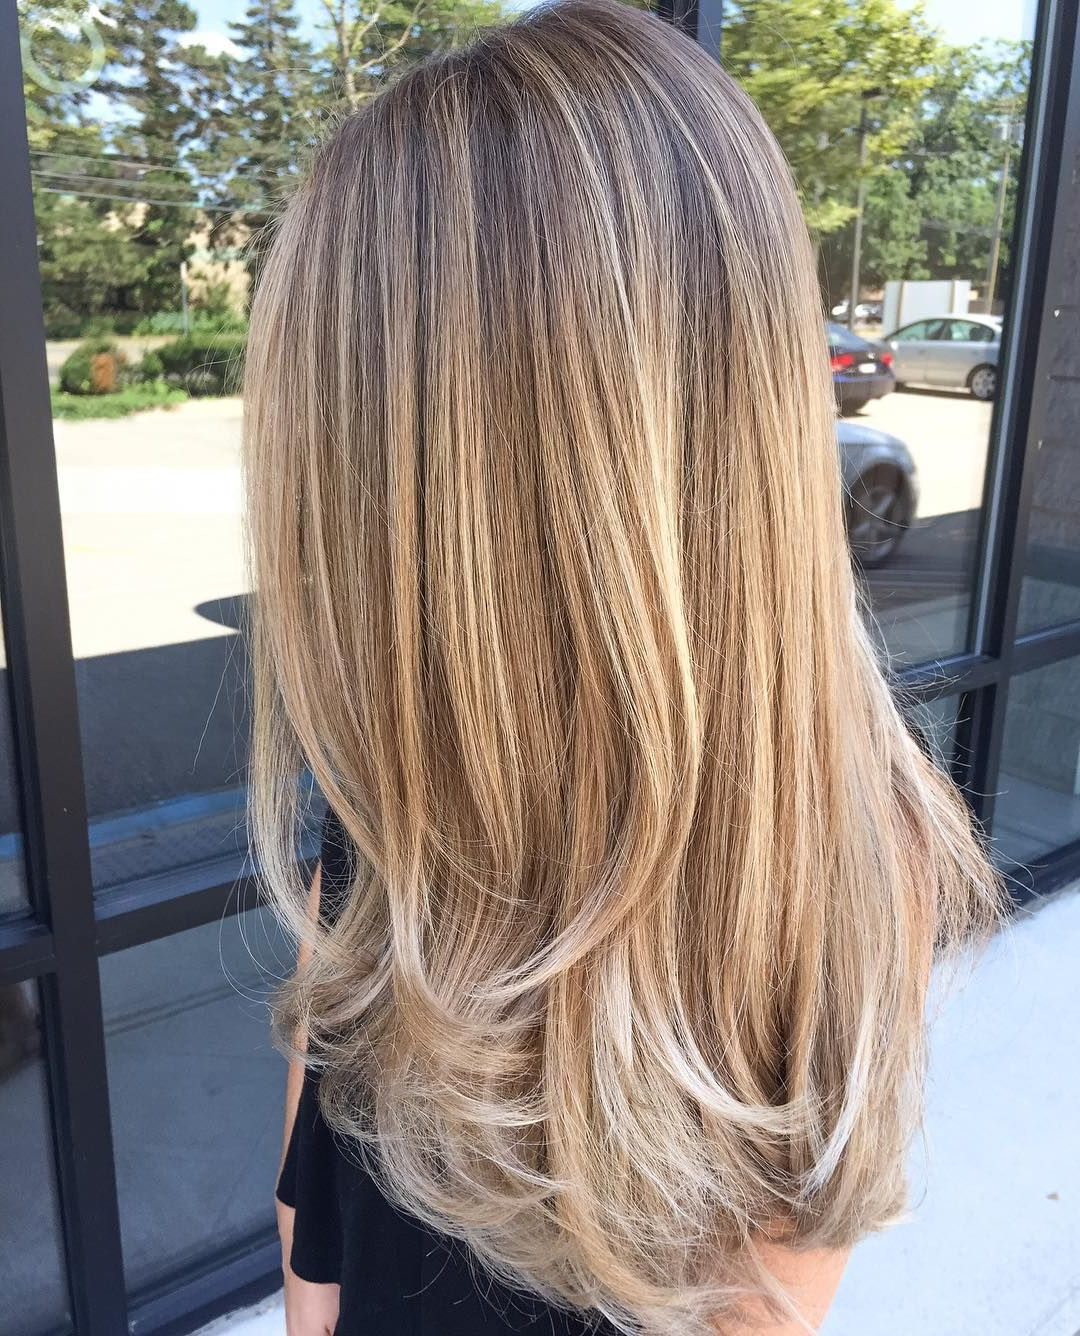 Widely Used Brown Blonde Hair With Long Layers Hairstyles Pertaining To 69 Cute Layered Hairstyles And Cuts For Long Hair (View 3 of 20)